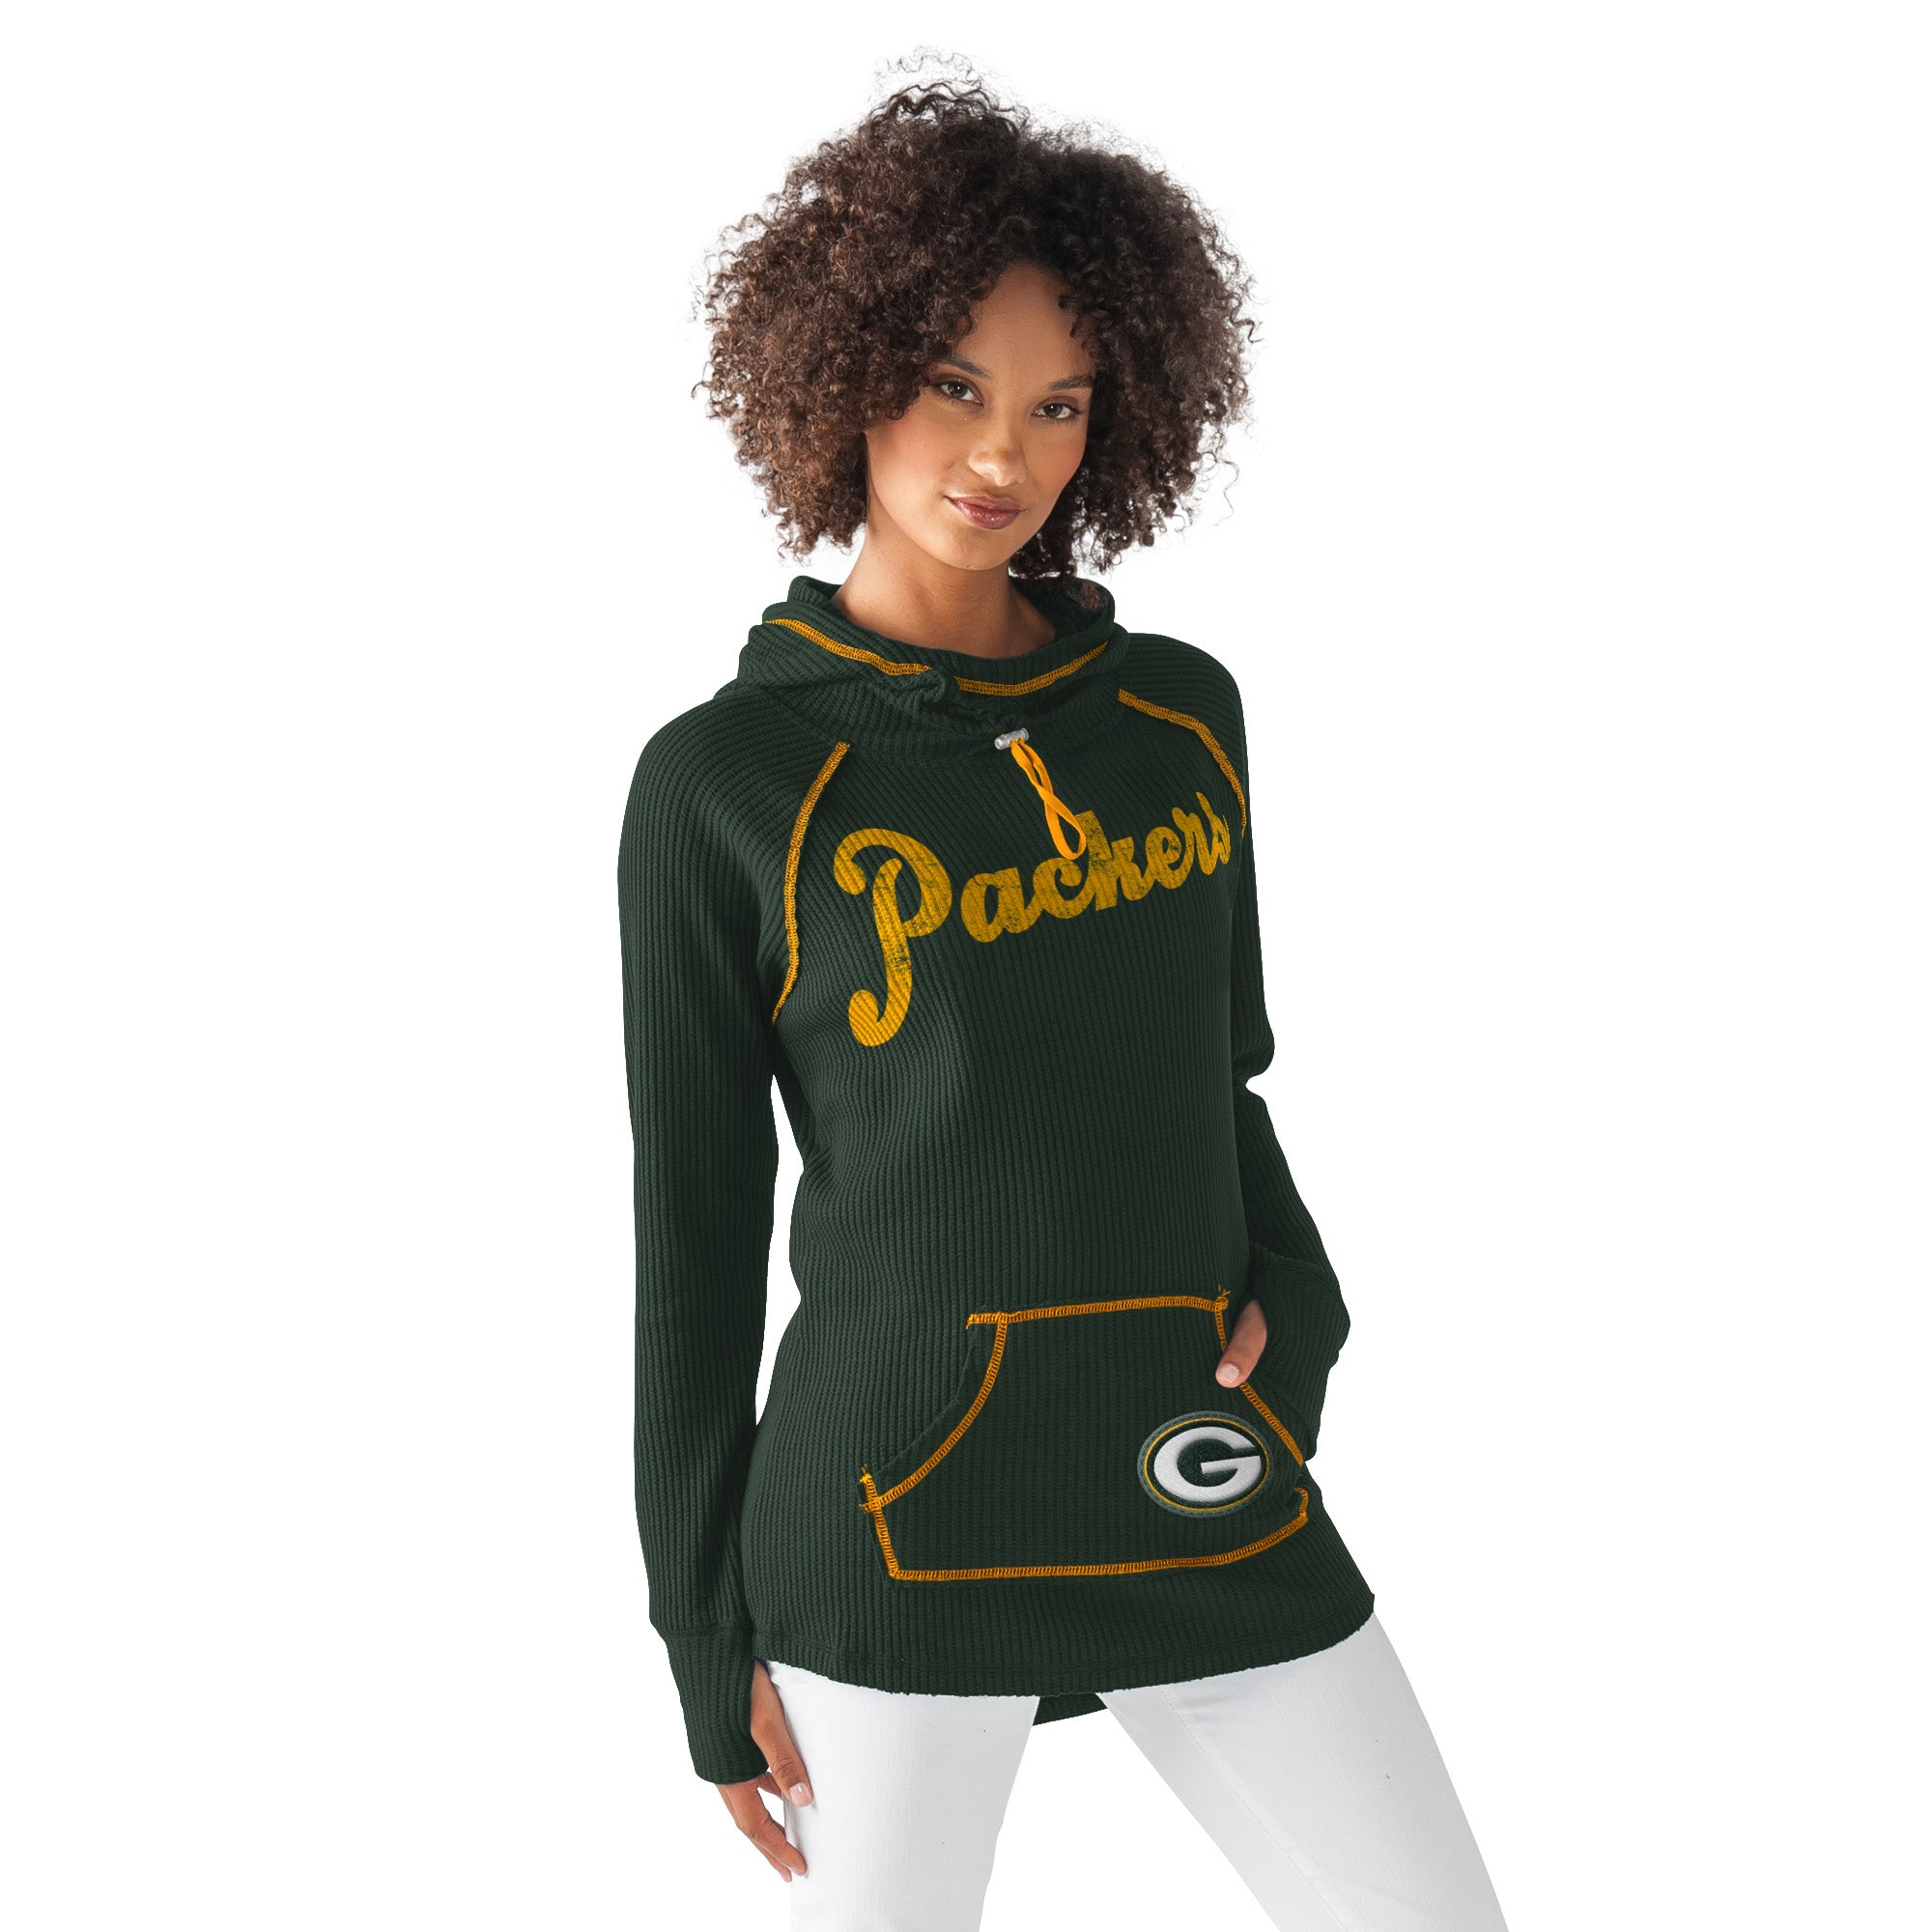 Green Bay Packers Base Camp Adventure Womens Hoodie Medium